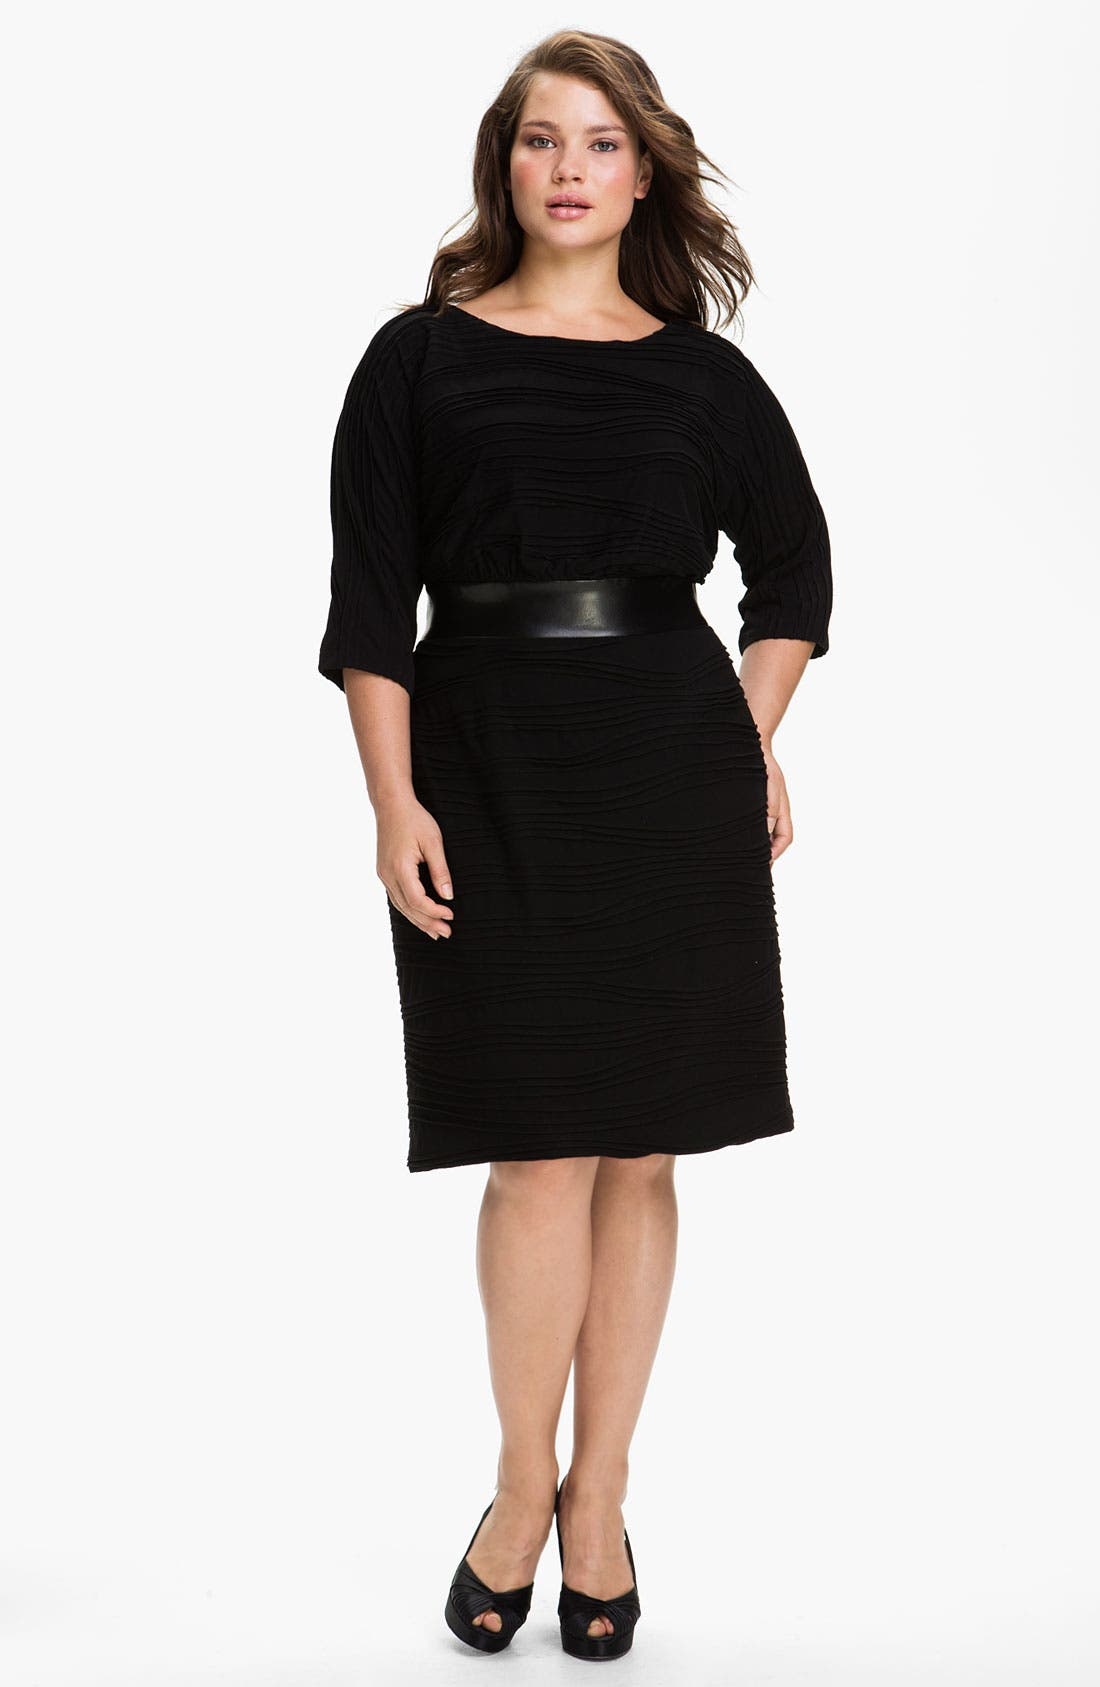 Alternate Image 1 Selected - Adrianna Papell Faux Leather Trim Jersey Sheath Dress (Plus)